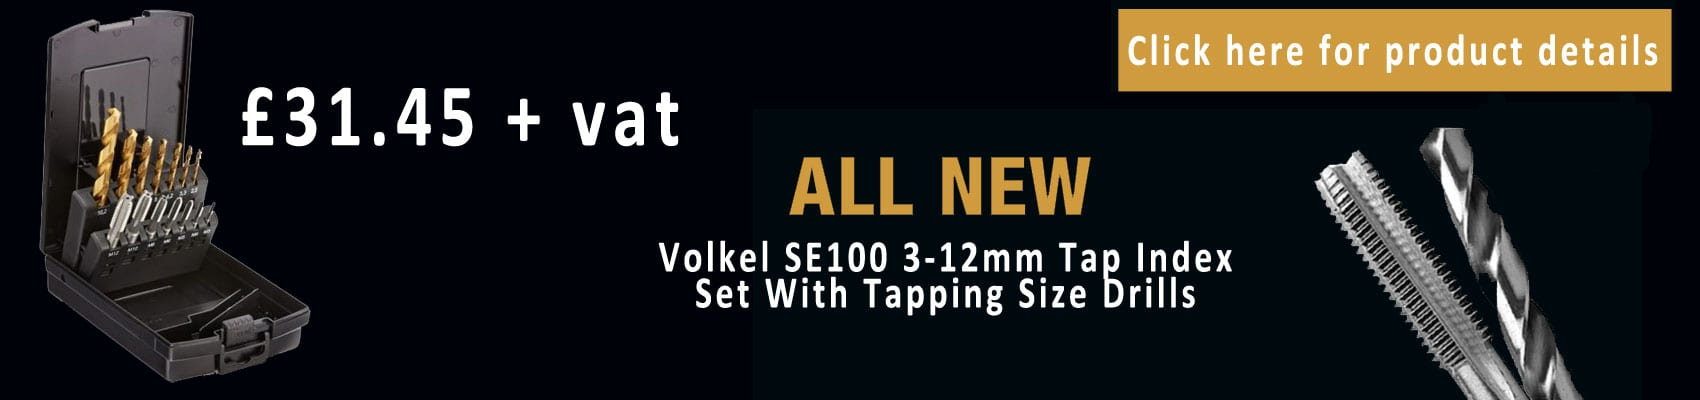 Volkel SE100 3-12mm Tap Index Set With Tapping Size Drills